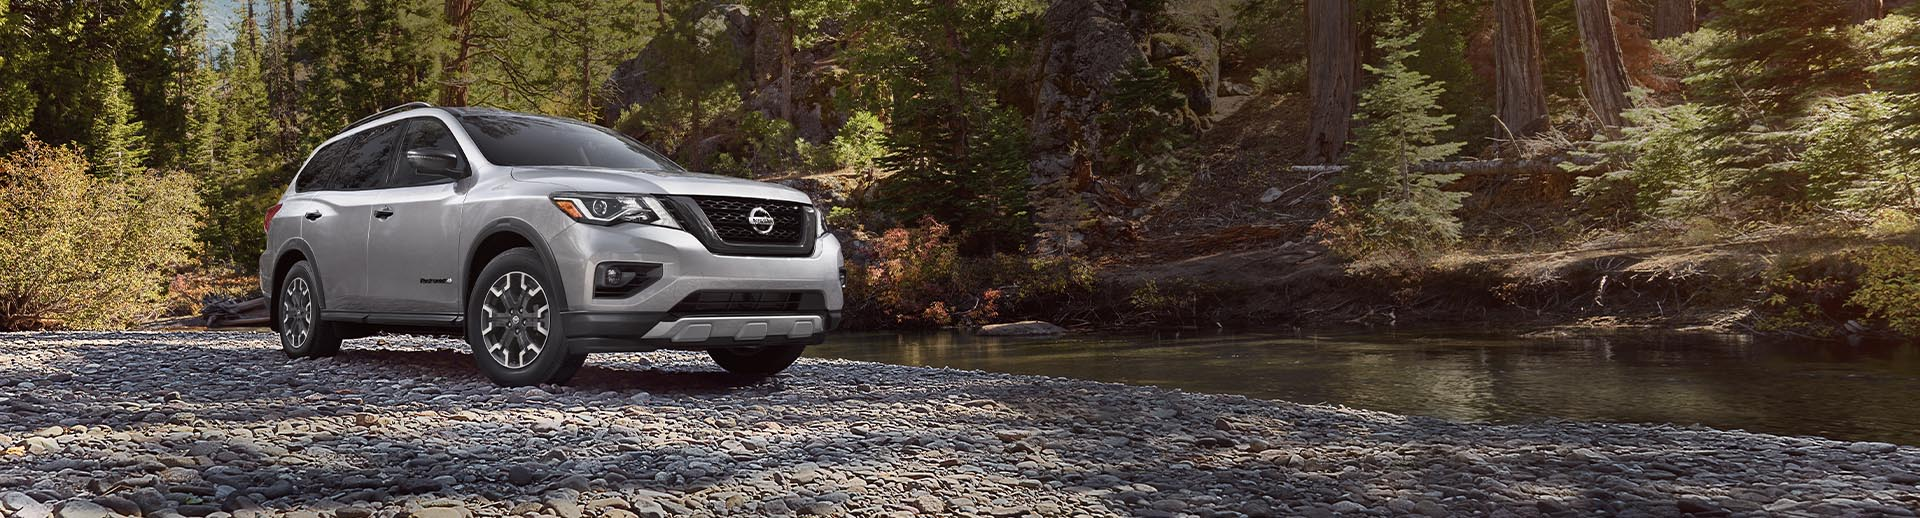 2020 Nissan Pathfinder Lifestyle Photo